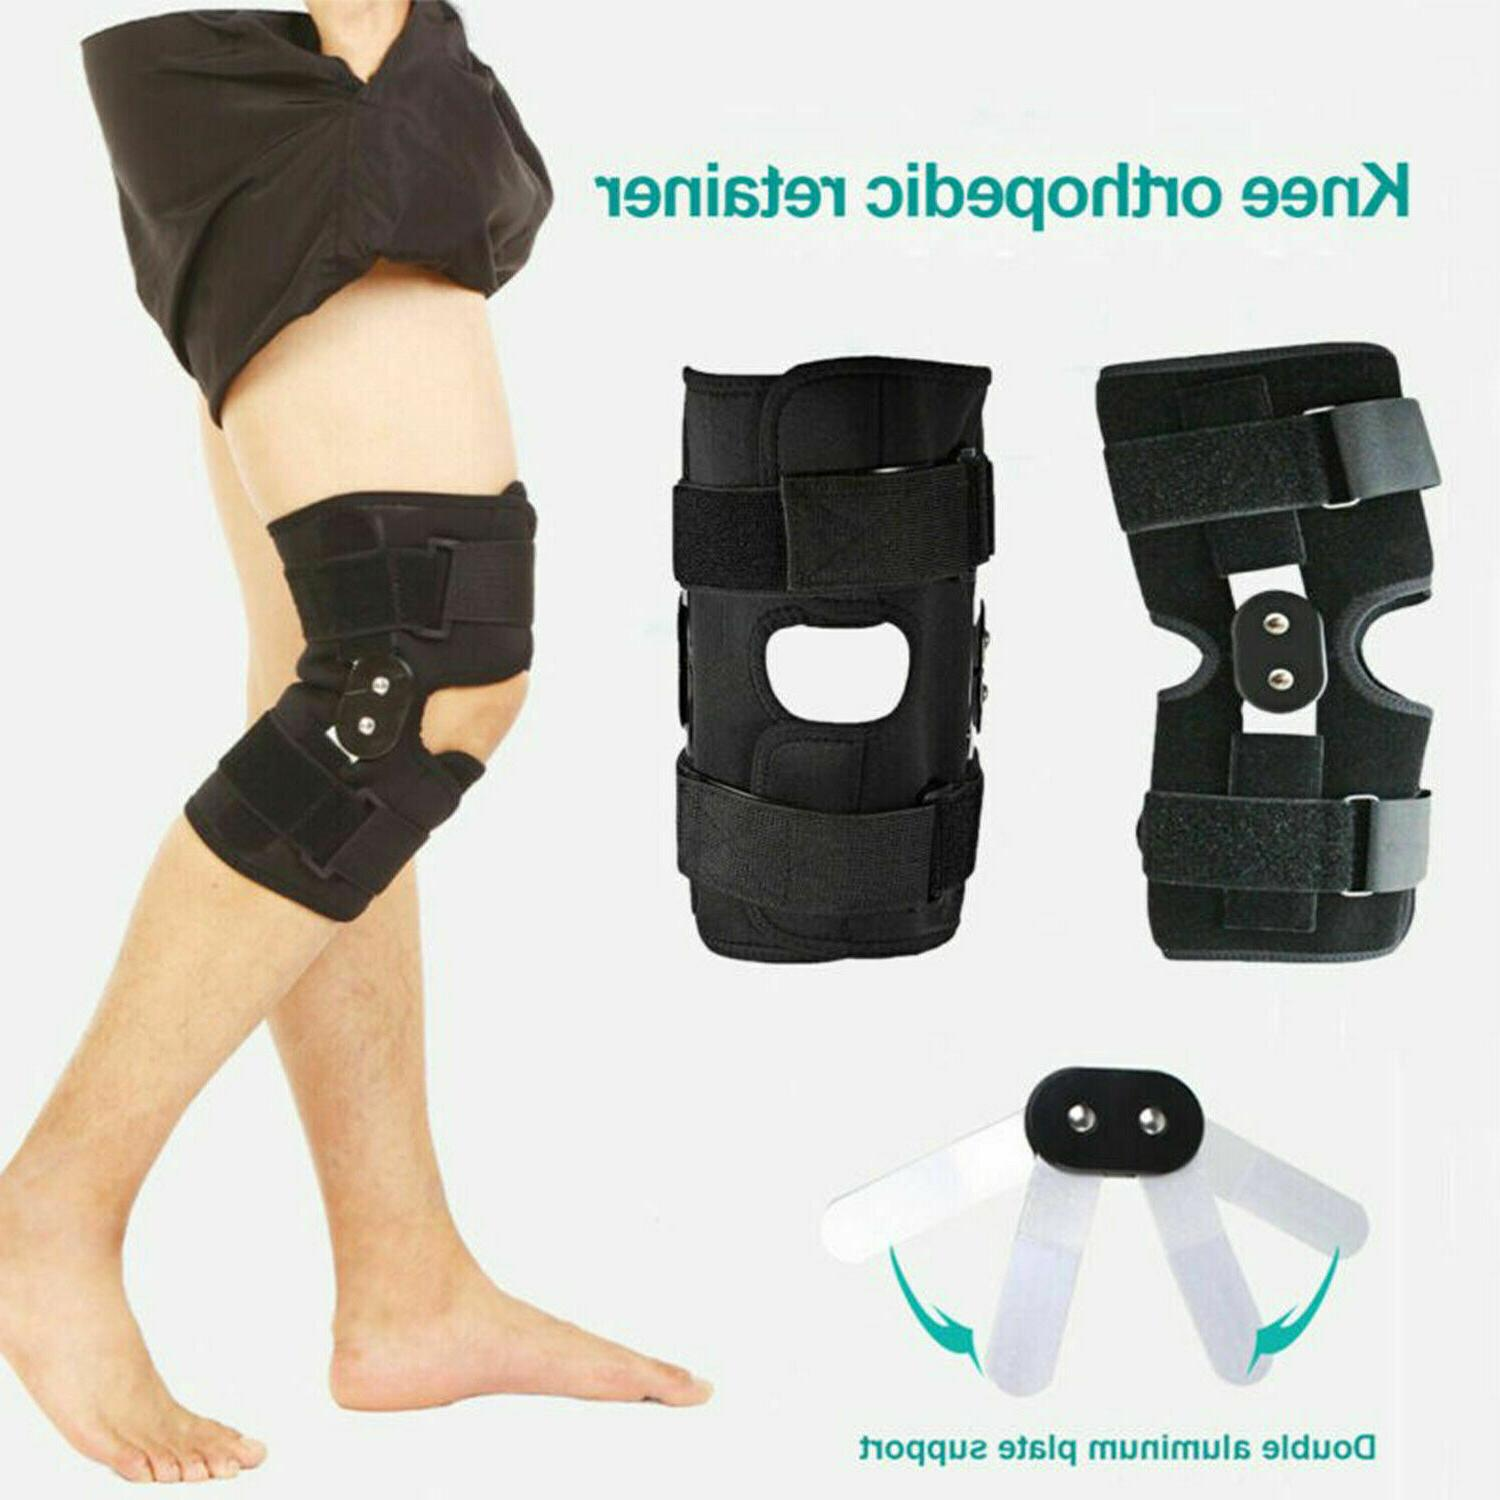 Adjustable Support Stabilizer Compression Sleeve